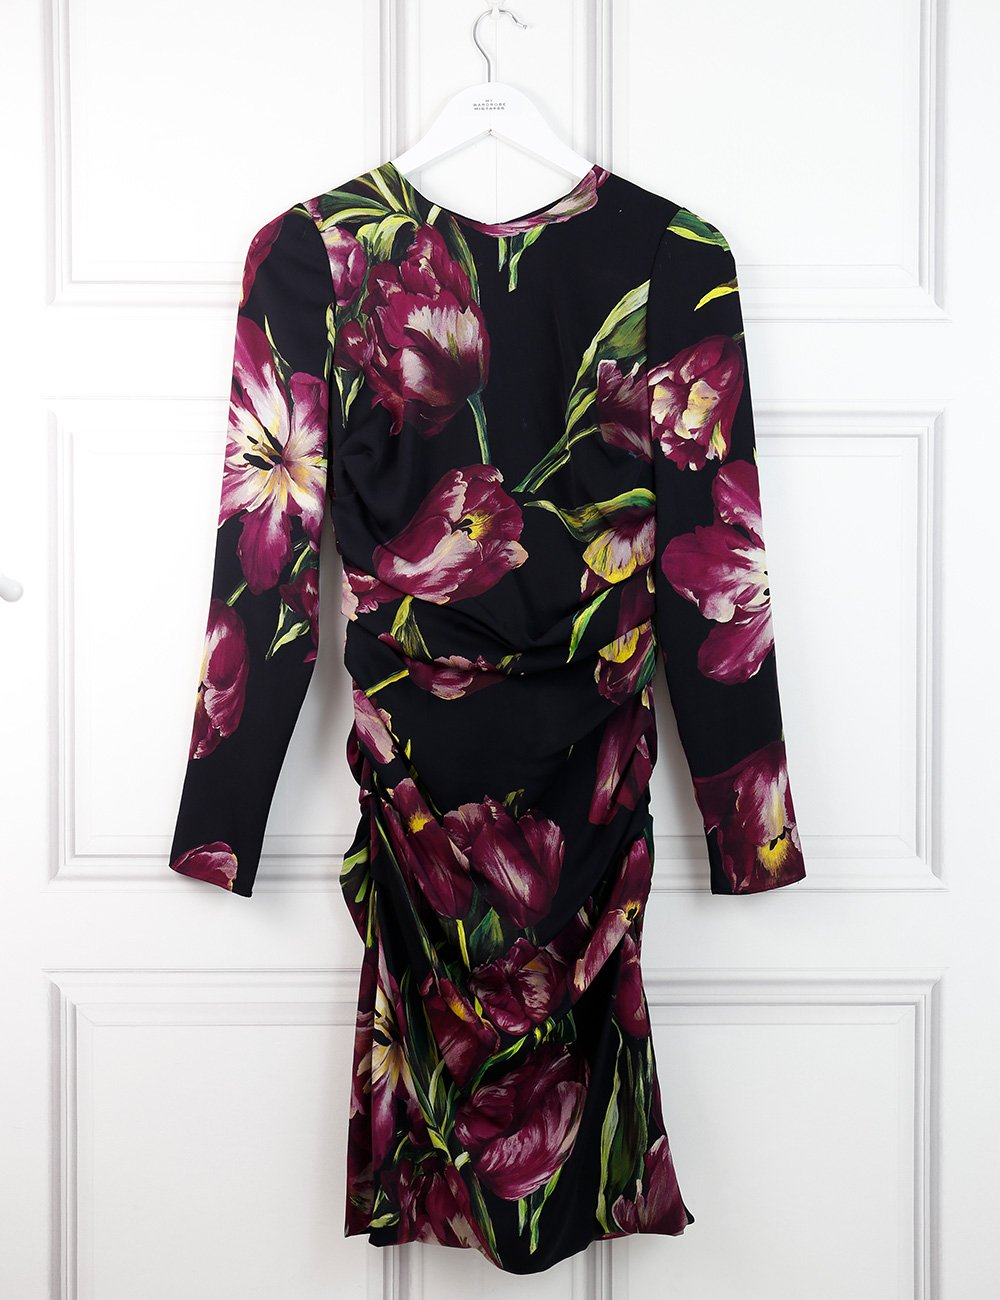 Dolce&Gabbana multicolour tulip print dress 8UK- My Wardrobe Mistakes